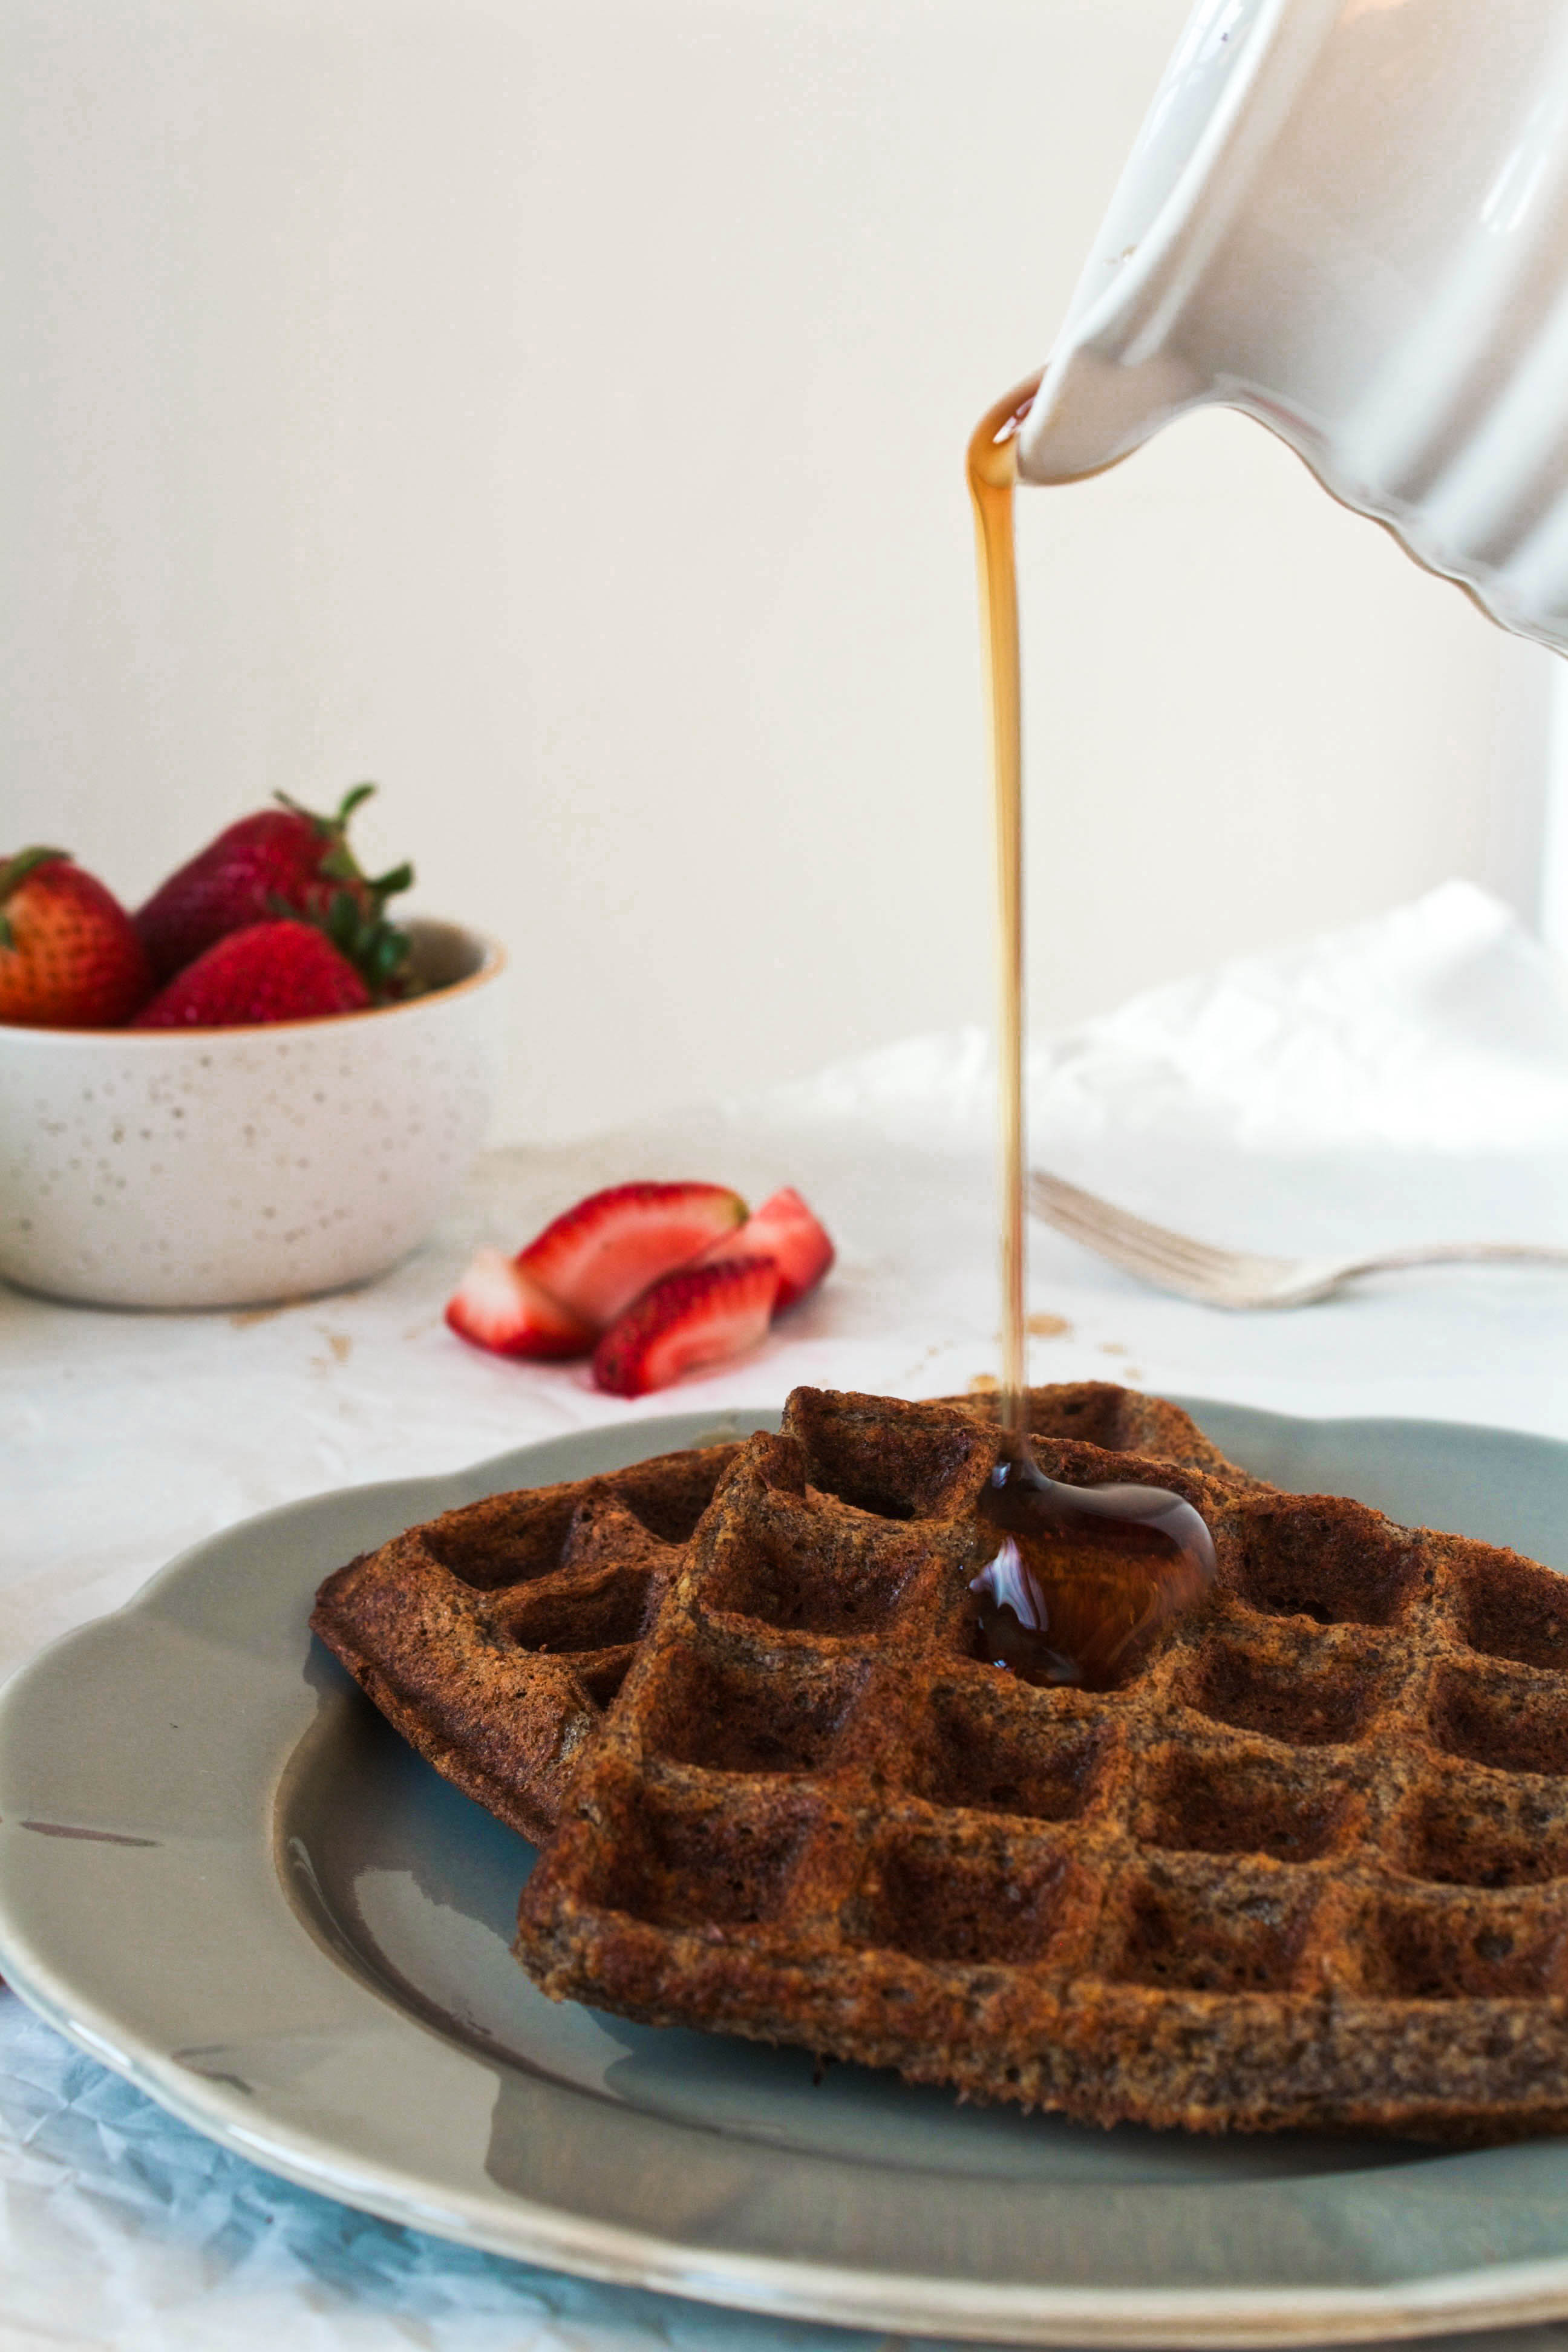 Gluten Free Buckwheat Waffles on a gray plate with a stream of syrup pouring over them | Zestful Kitchen